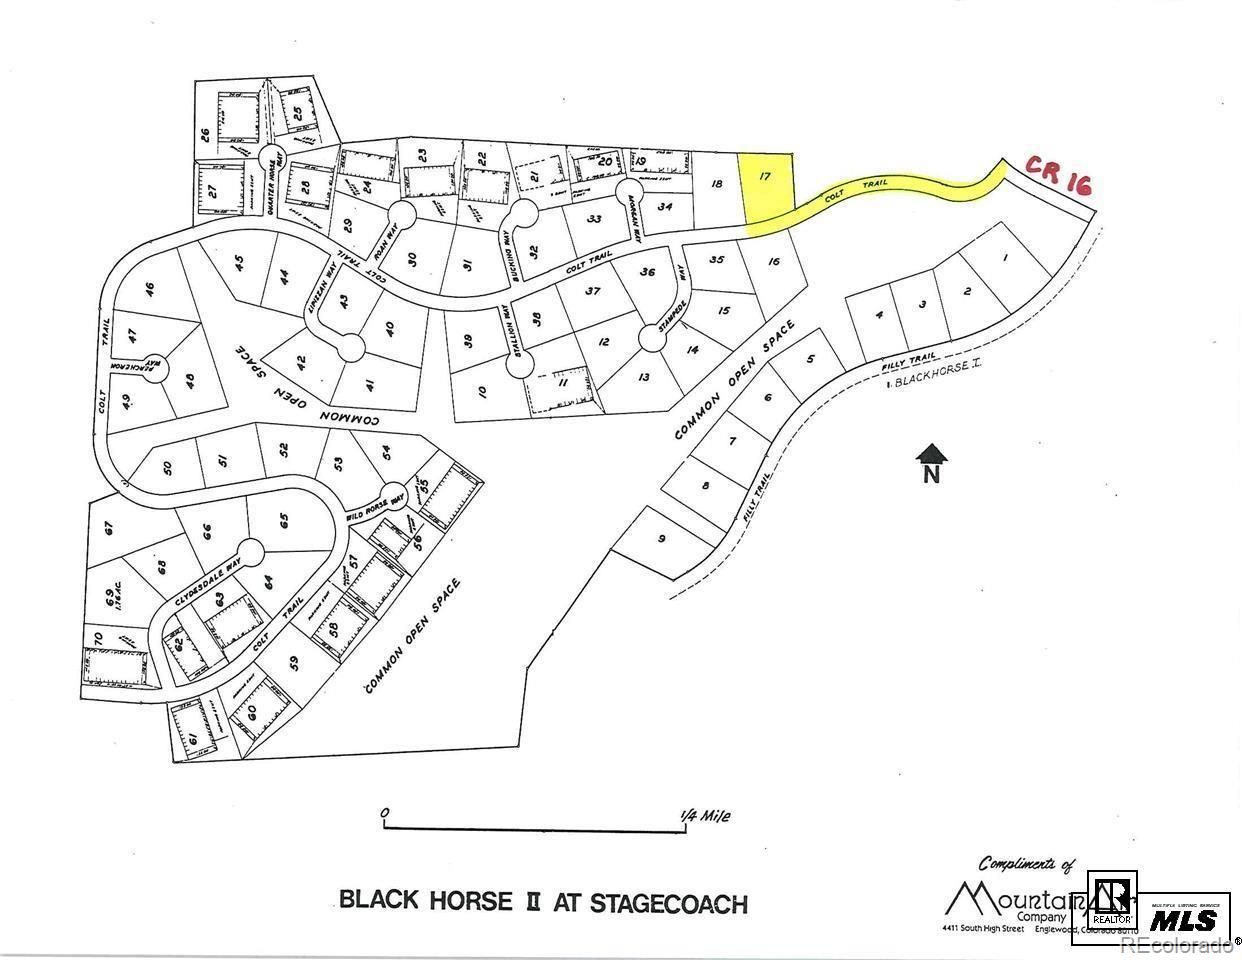 Black Horse Ii Subdivision At Stagecoach Real Estate Listings Main Image